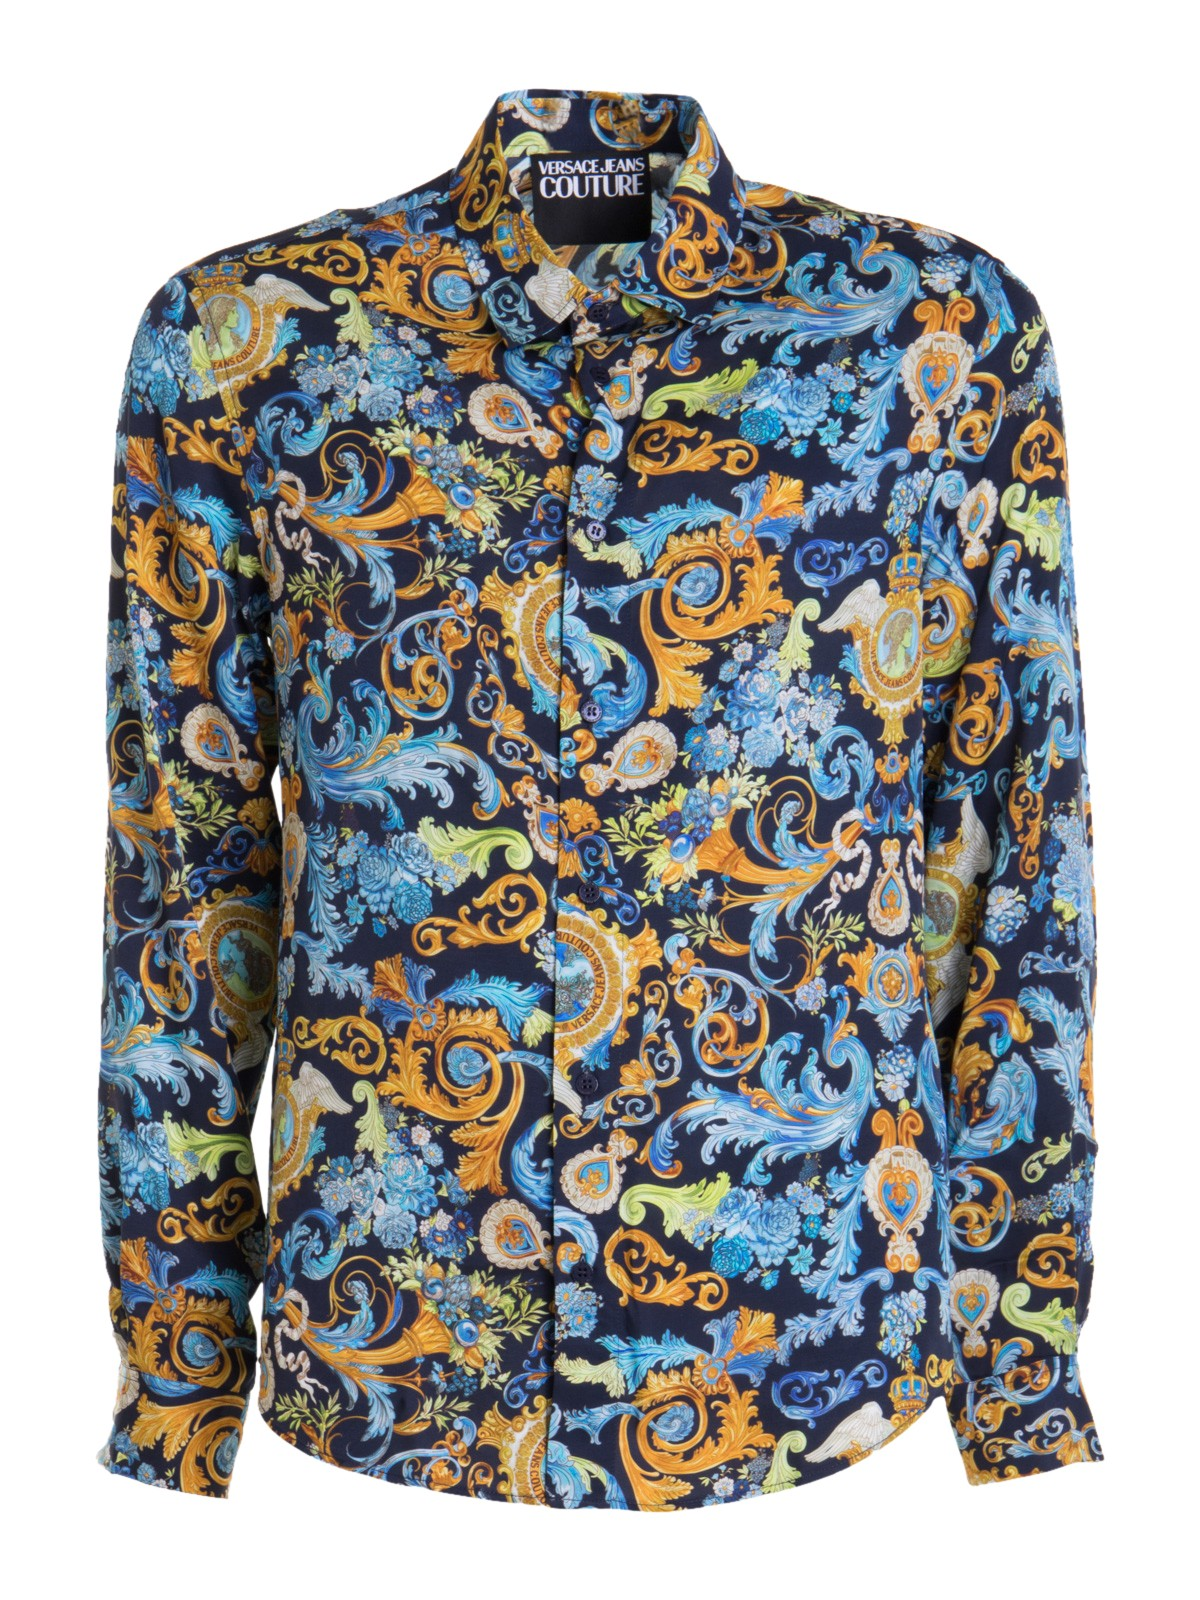 Versace Jeans Couture T-shirts SHIRT